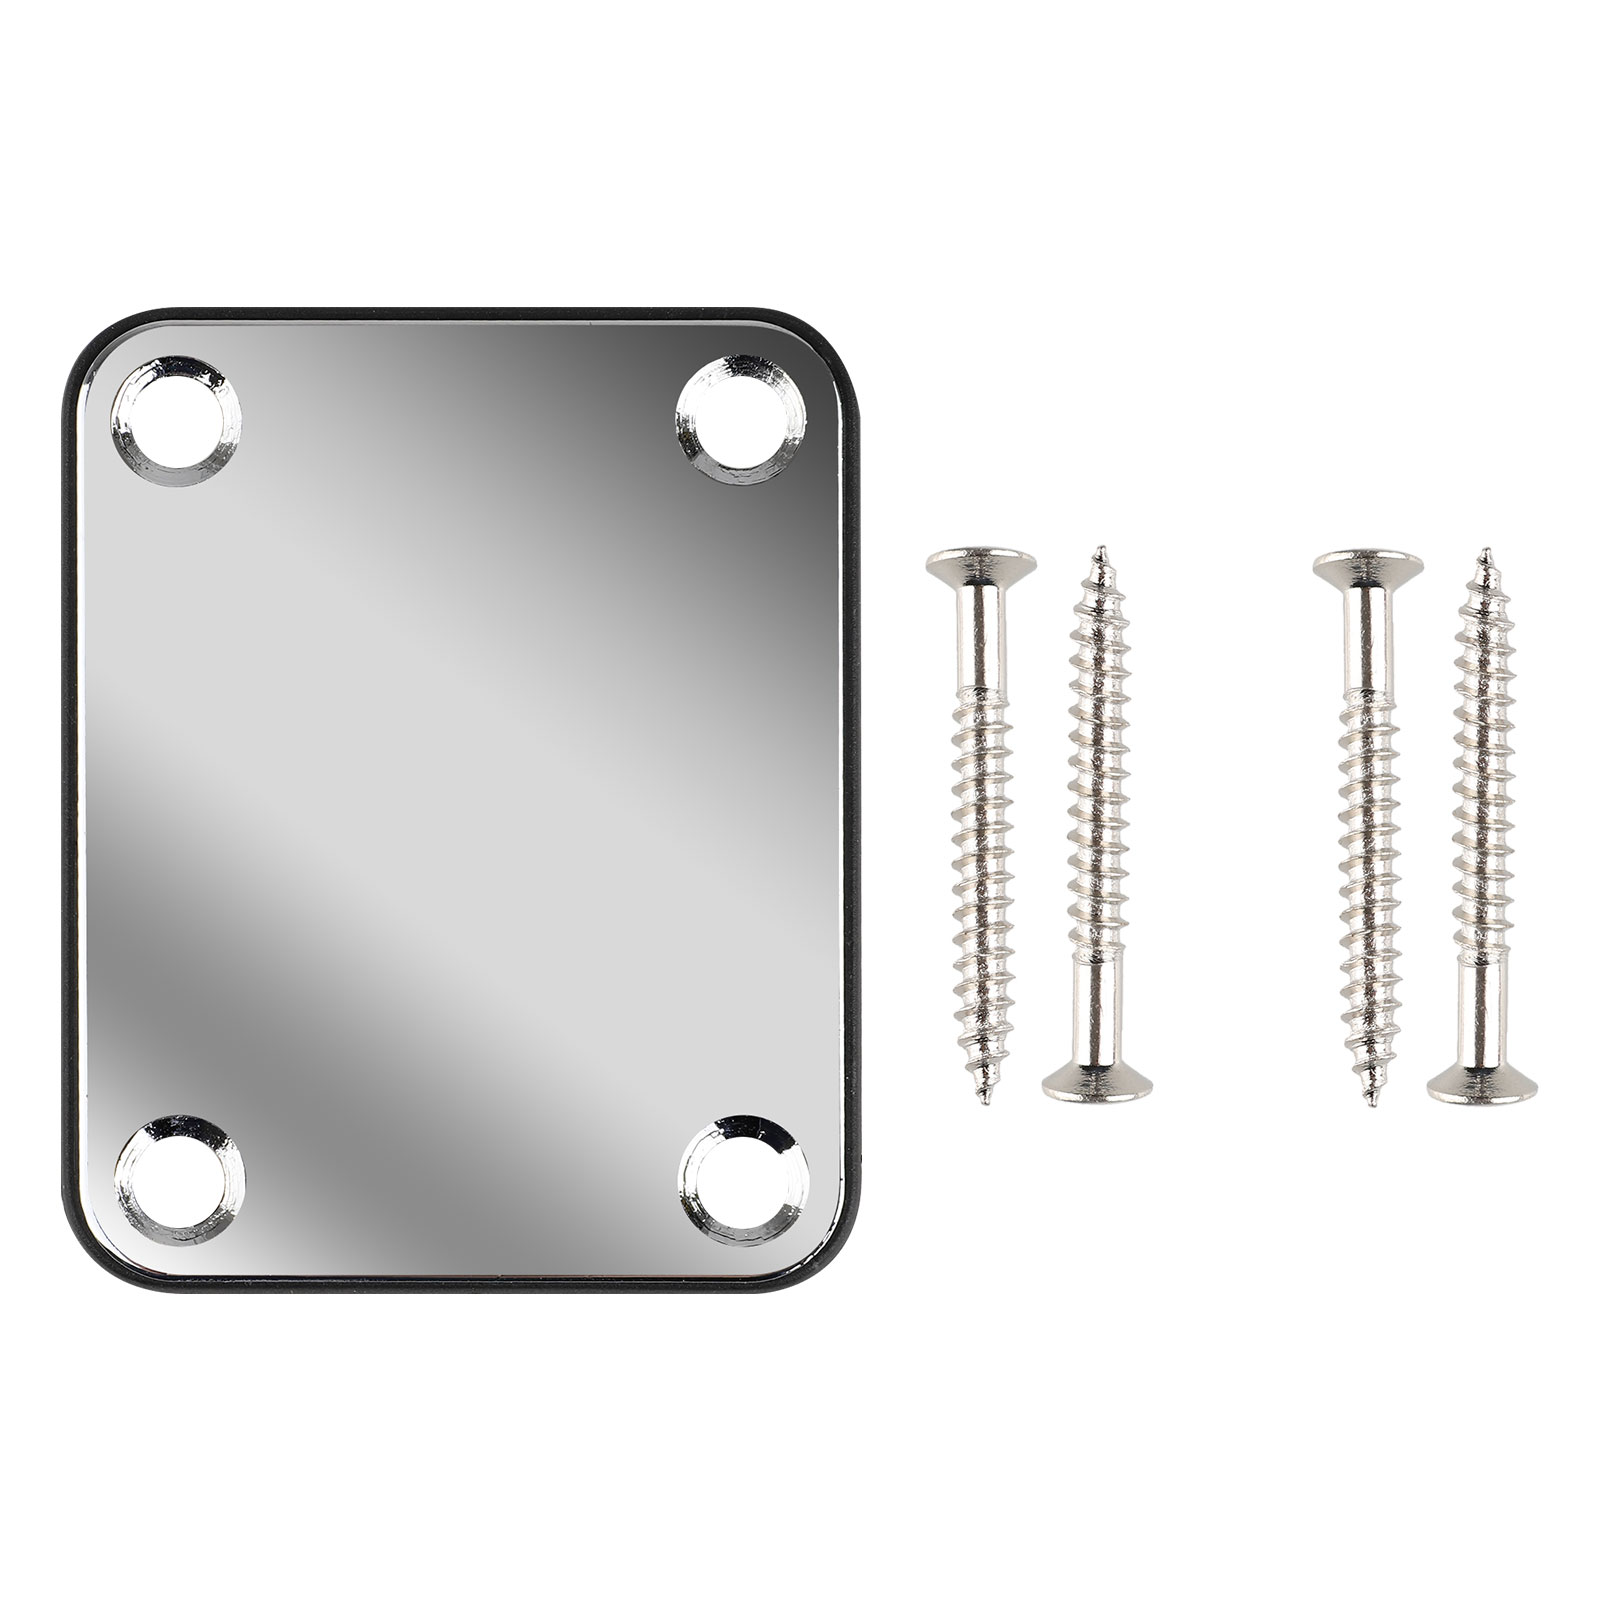 Neck Plate, EEEKit Electric Guitar Bolt Neck Plate Chrome Bass with 4 Screws Accessory Part for Guitar Repairing Making